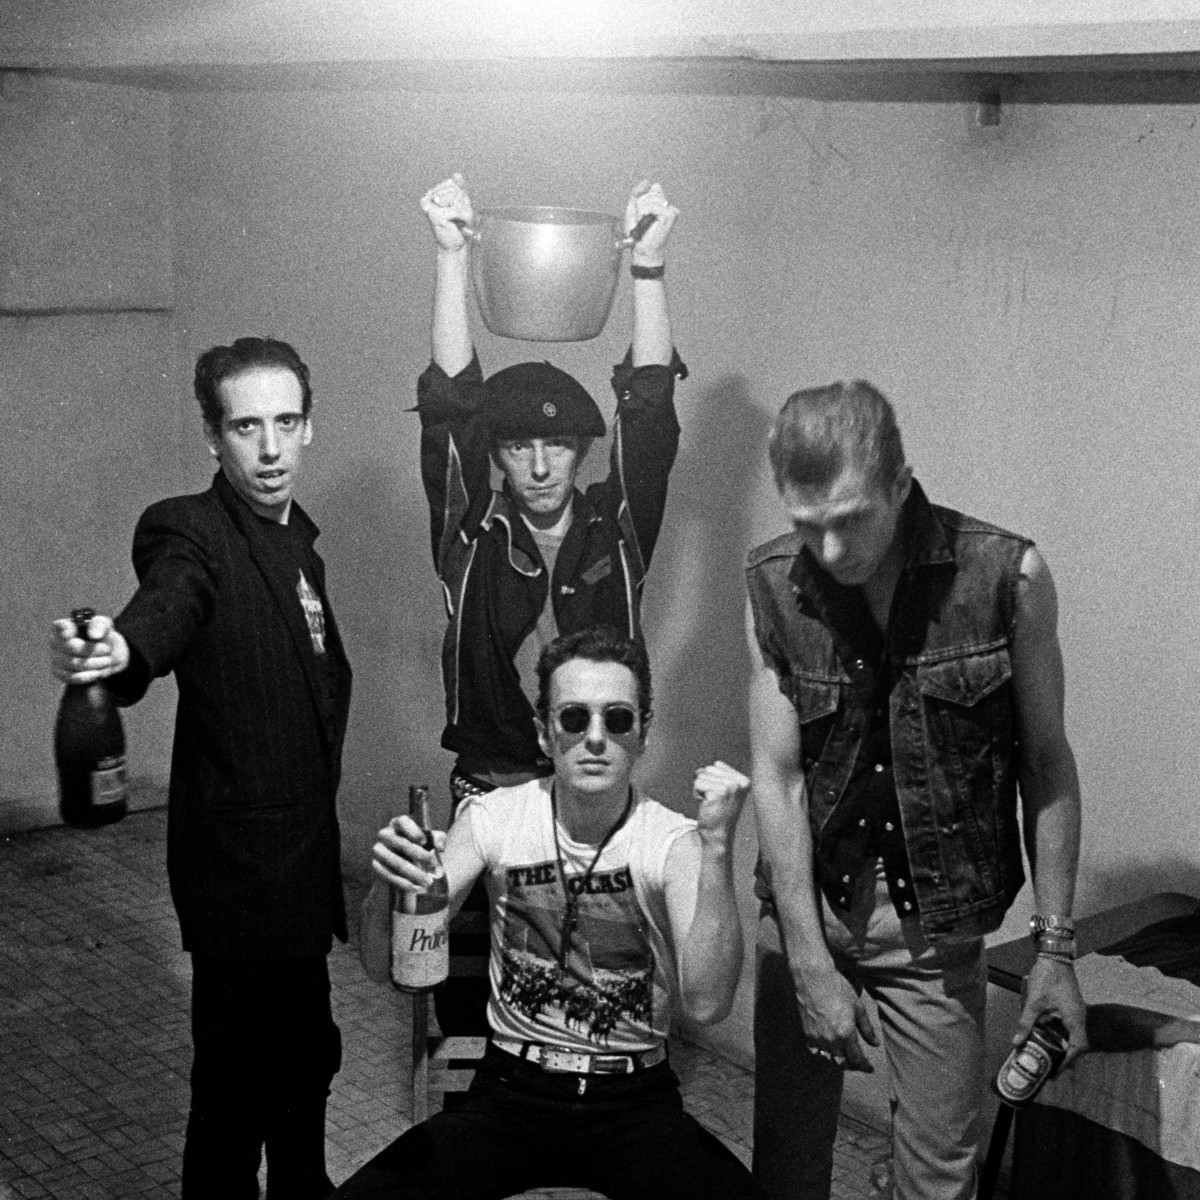 The clash london calling songs